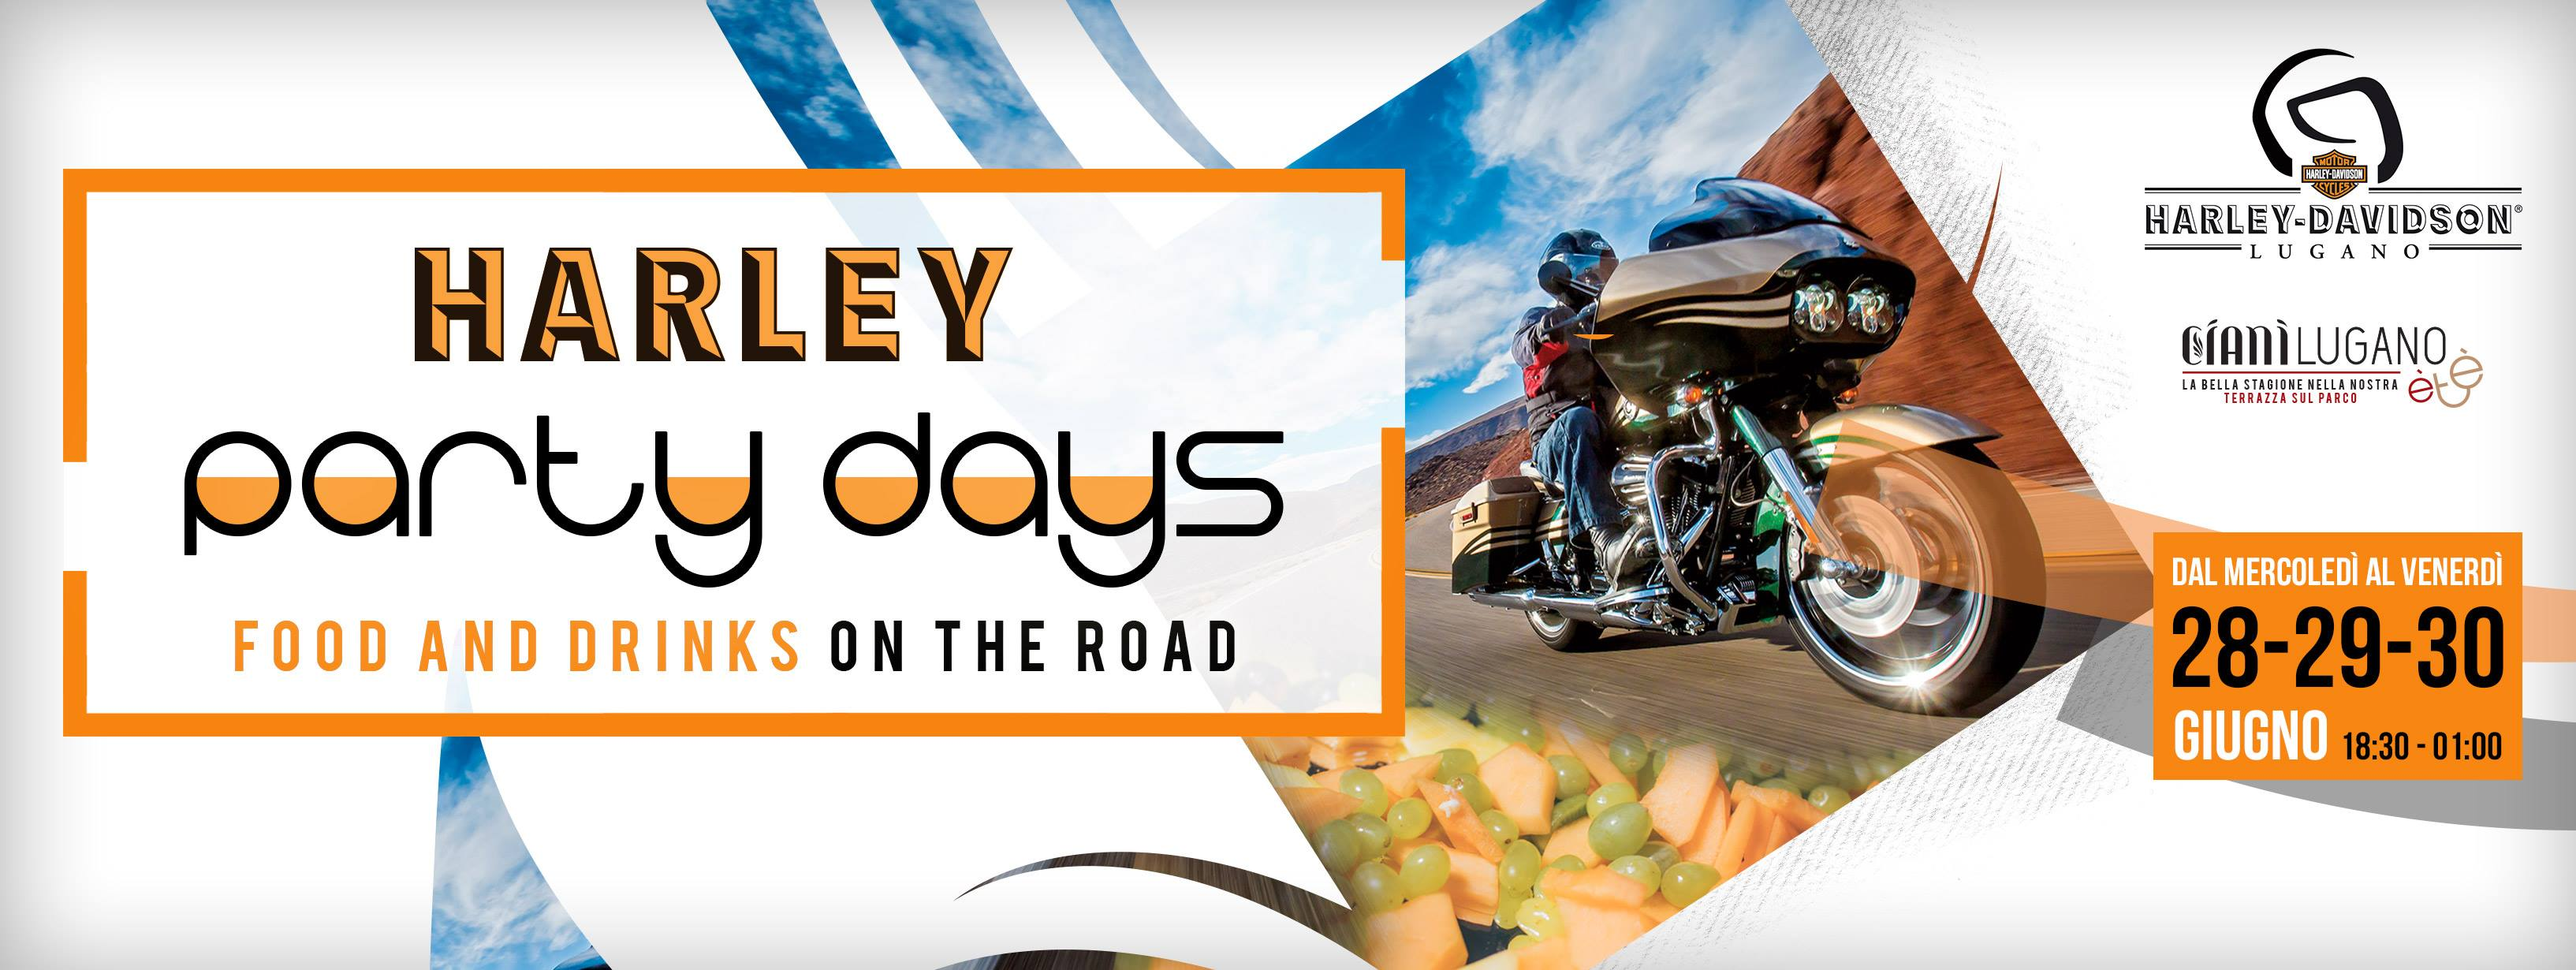 Harley Party Days - Lugano